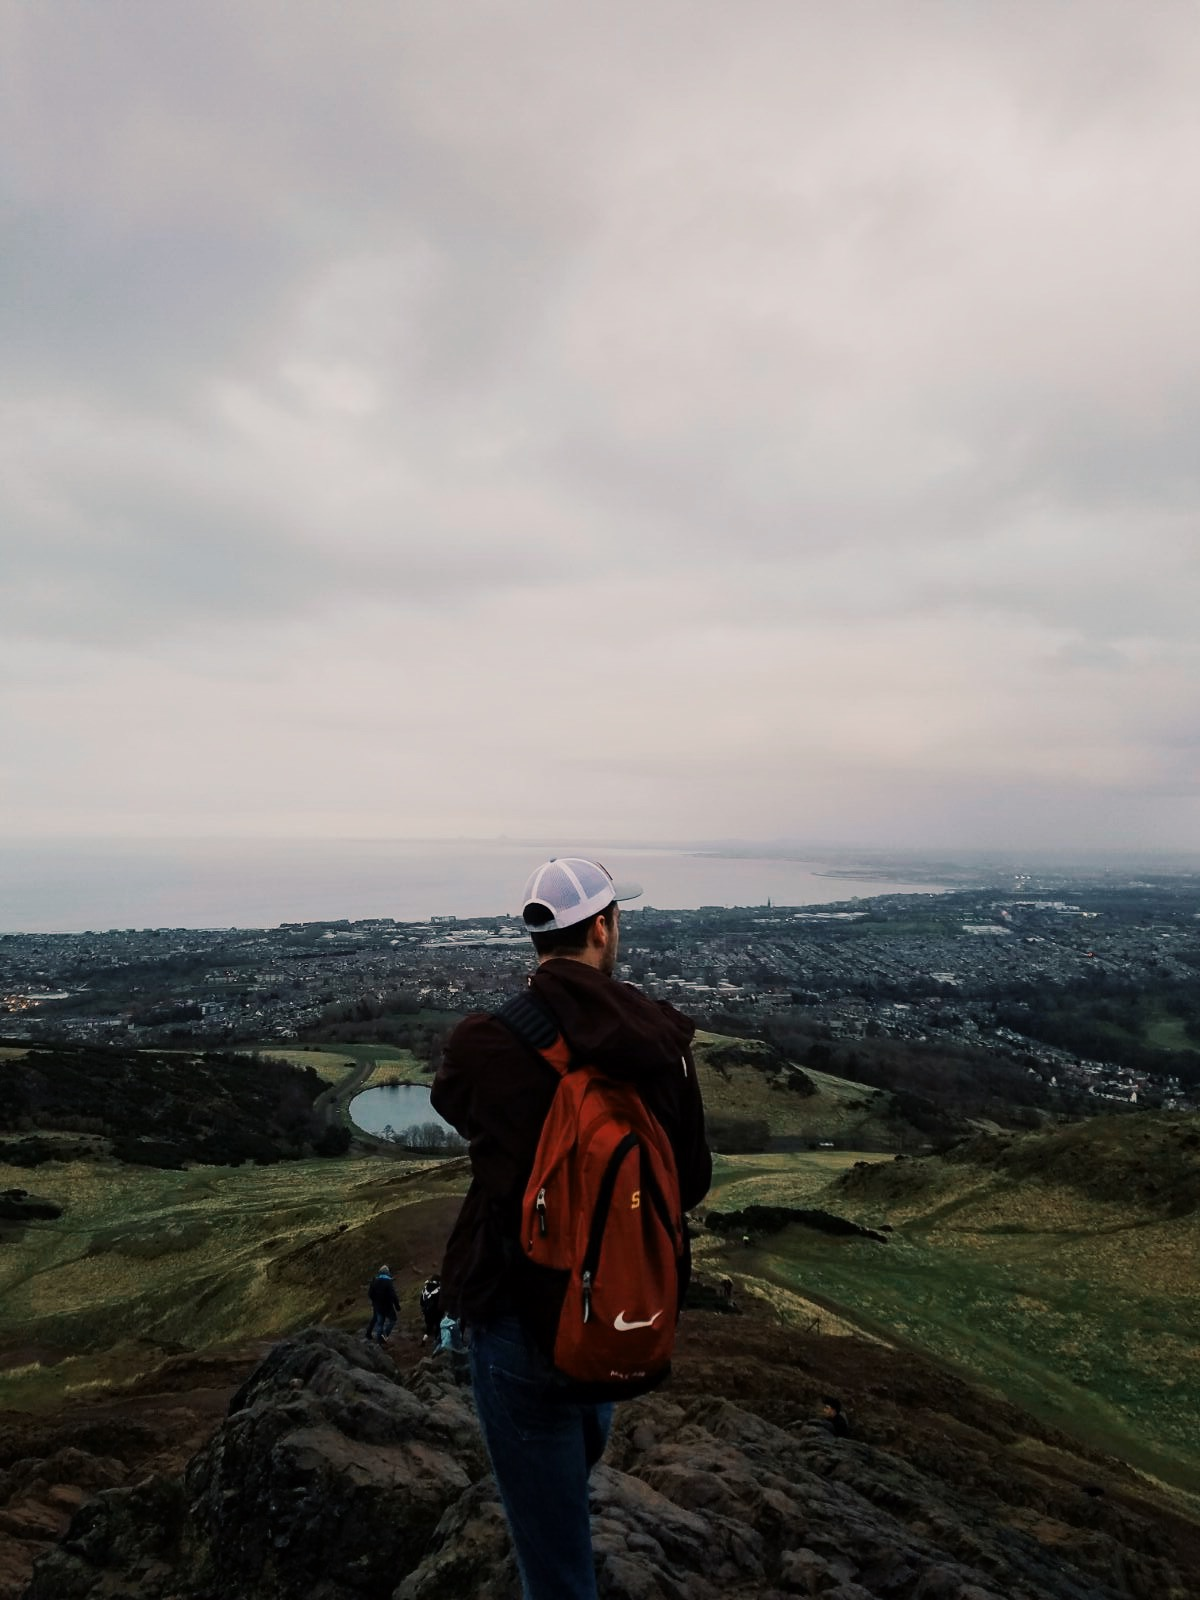 This photo was taken at Arthur's Seat in Edinburgh, Scotland. Kevin Horner ('17 journalism and mass communication) studied at the University of Manchester in England.